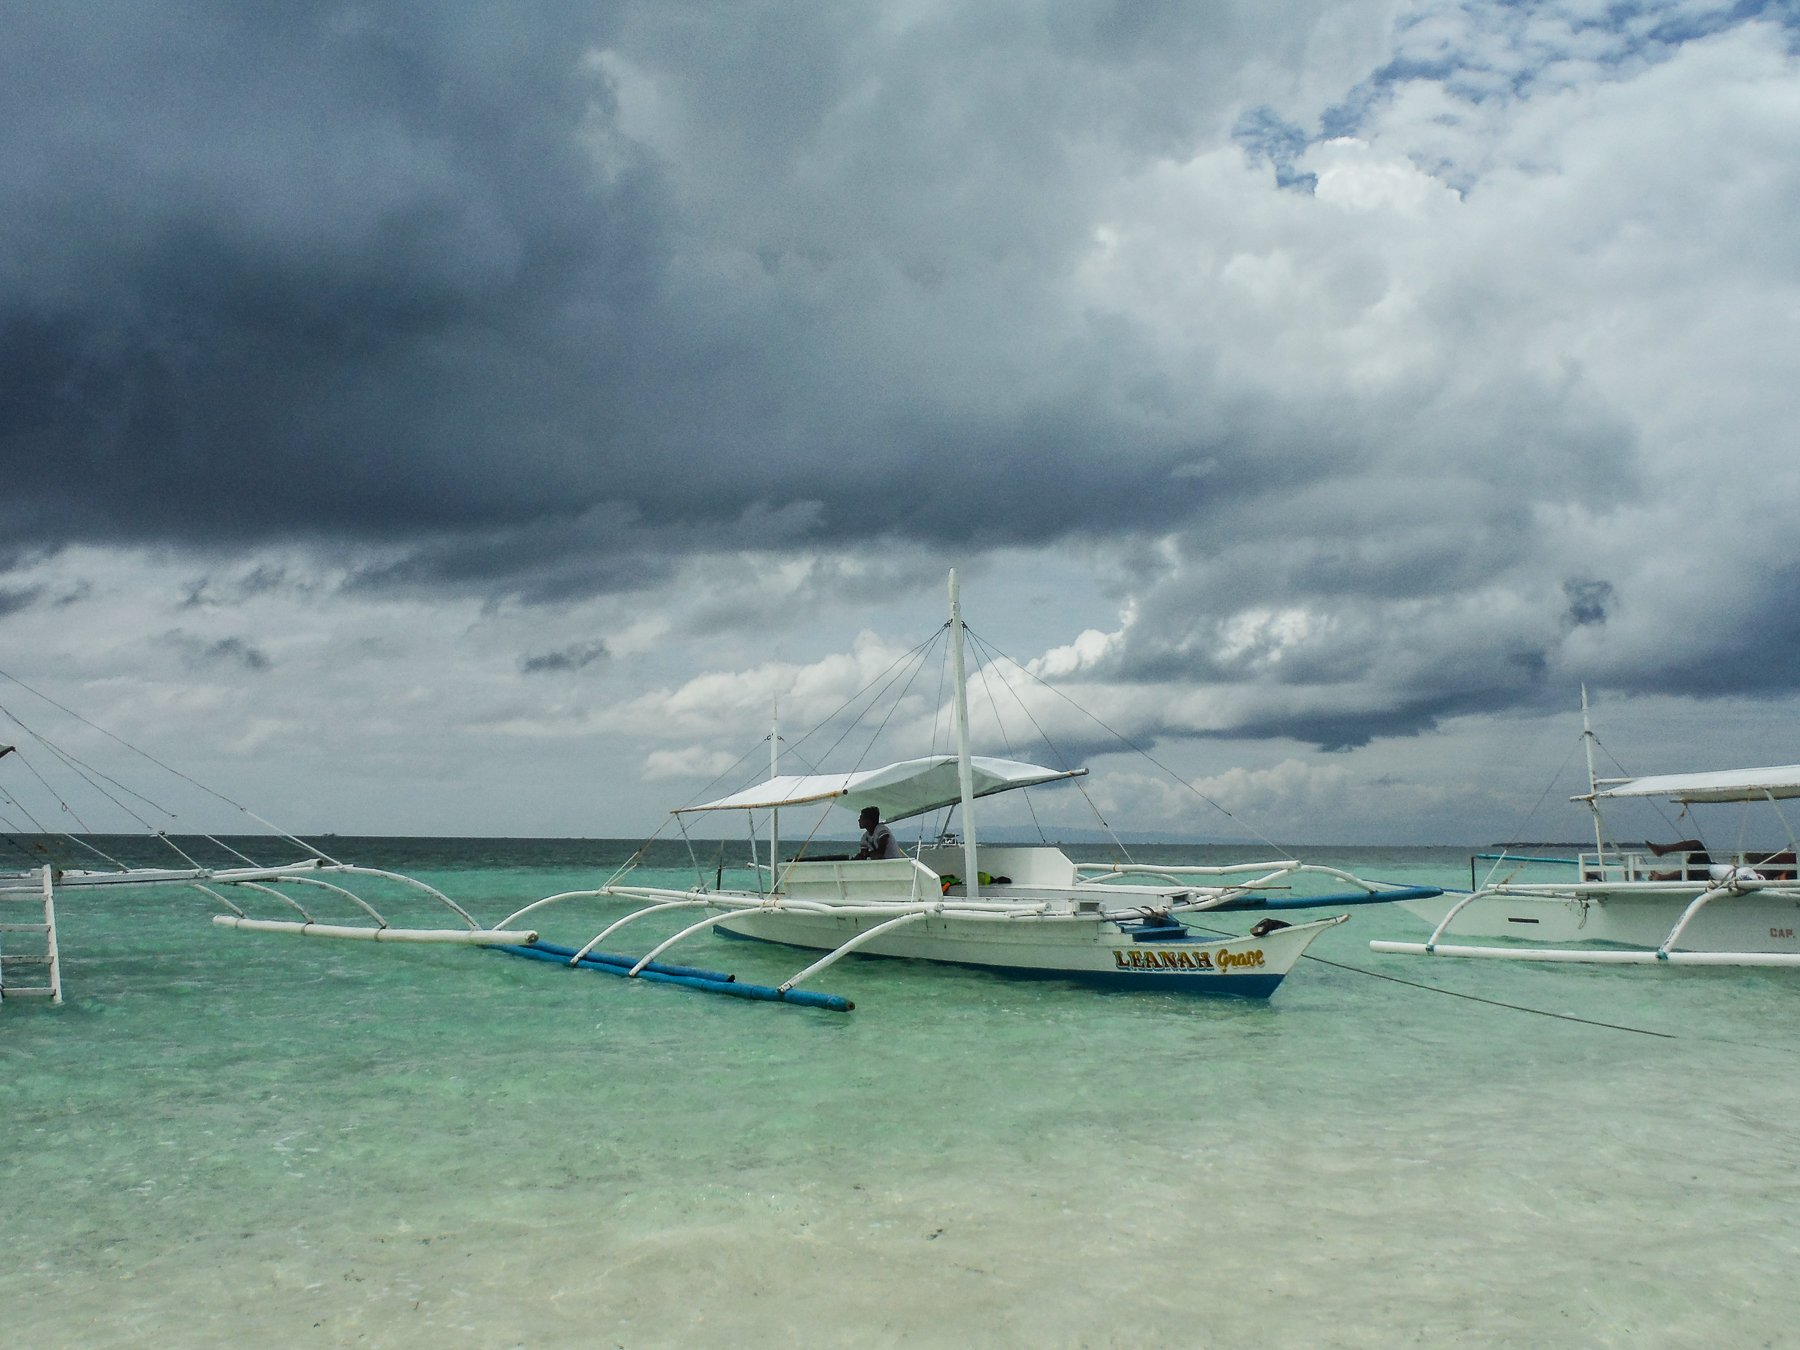 Boat moored to the sand dune at Virgin island in Panglao - Philippines Travel expenses and costs